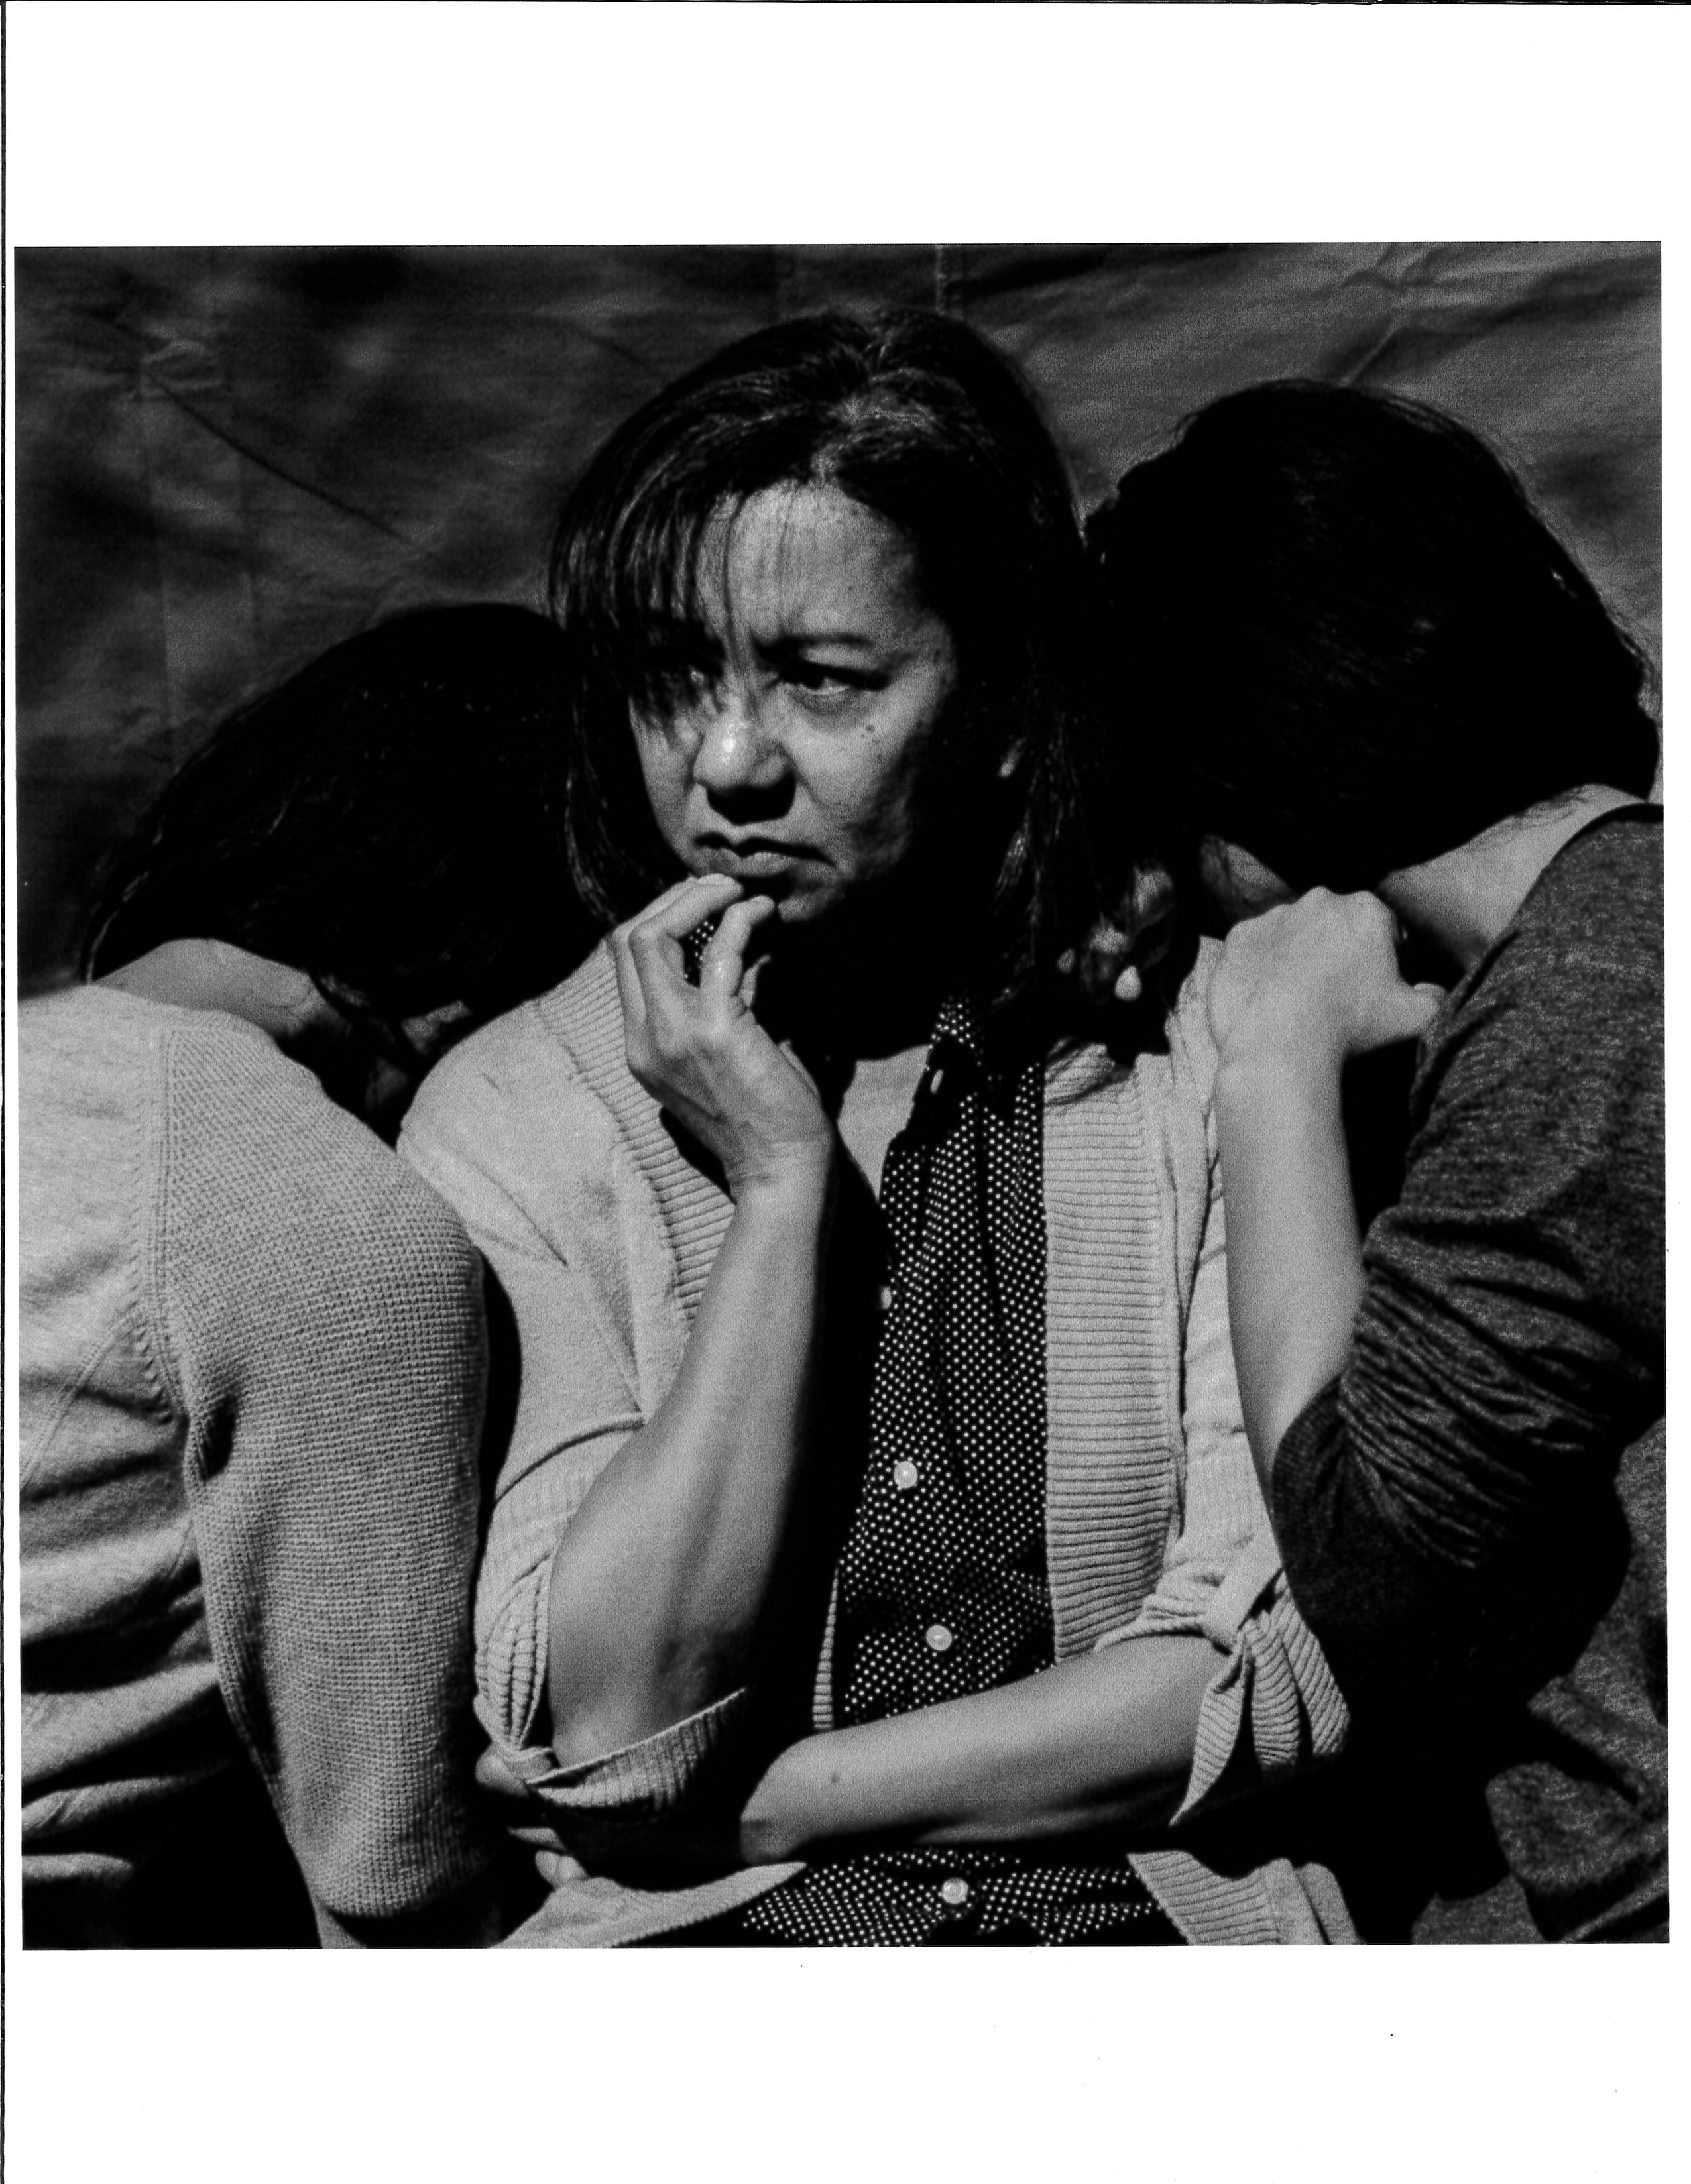 Alanna Paloma / Immigrant Mother / Honorable Mention / Grade 12